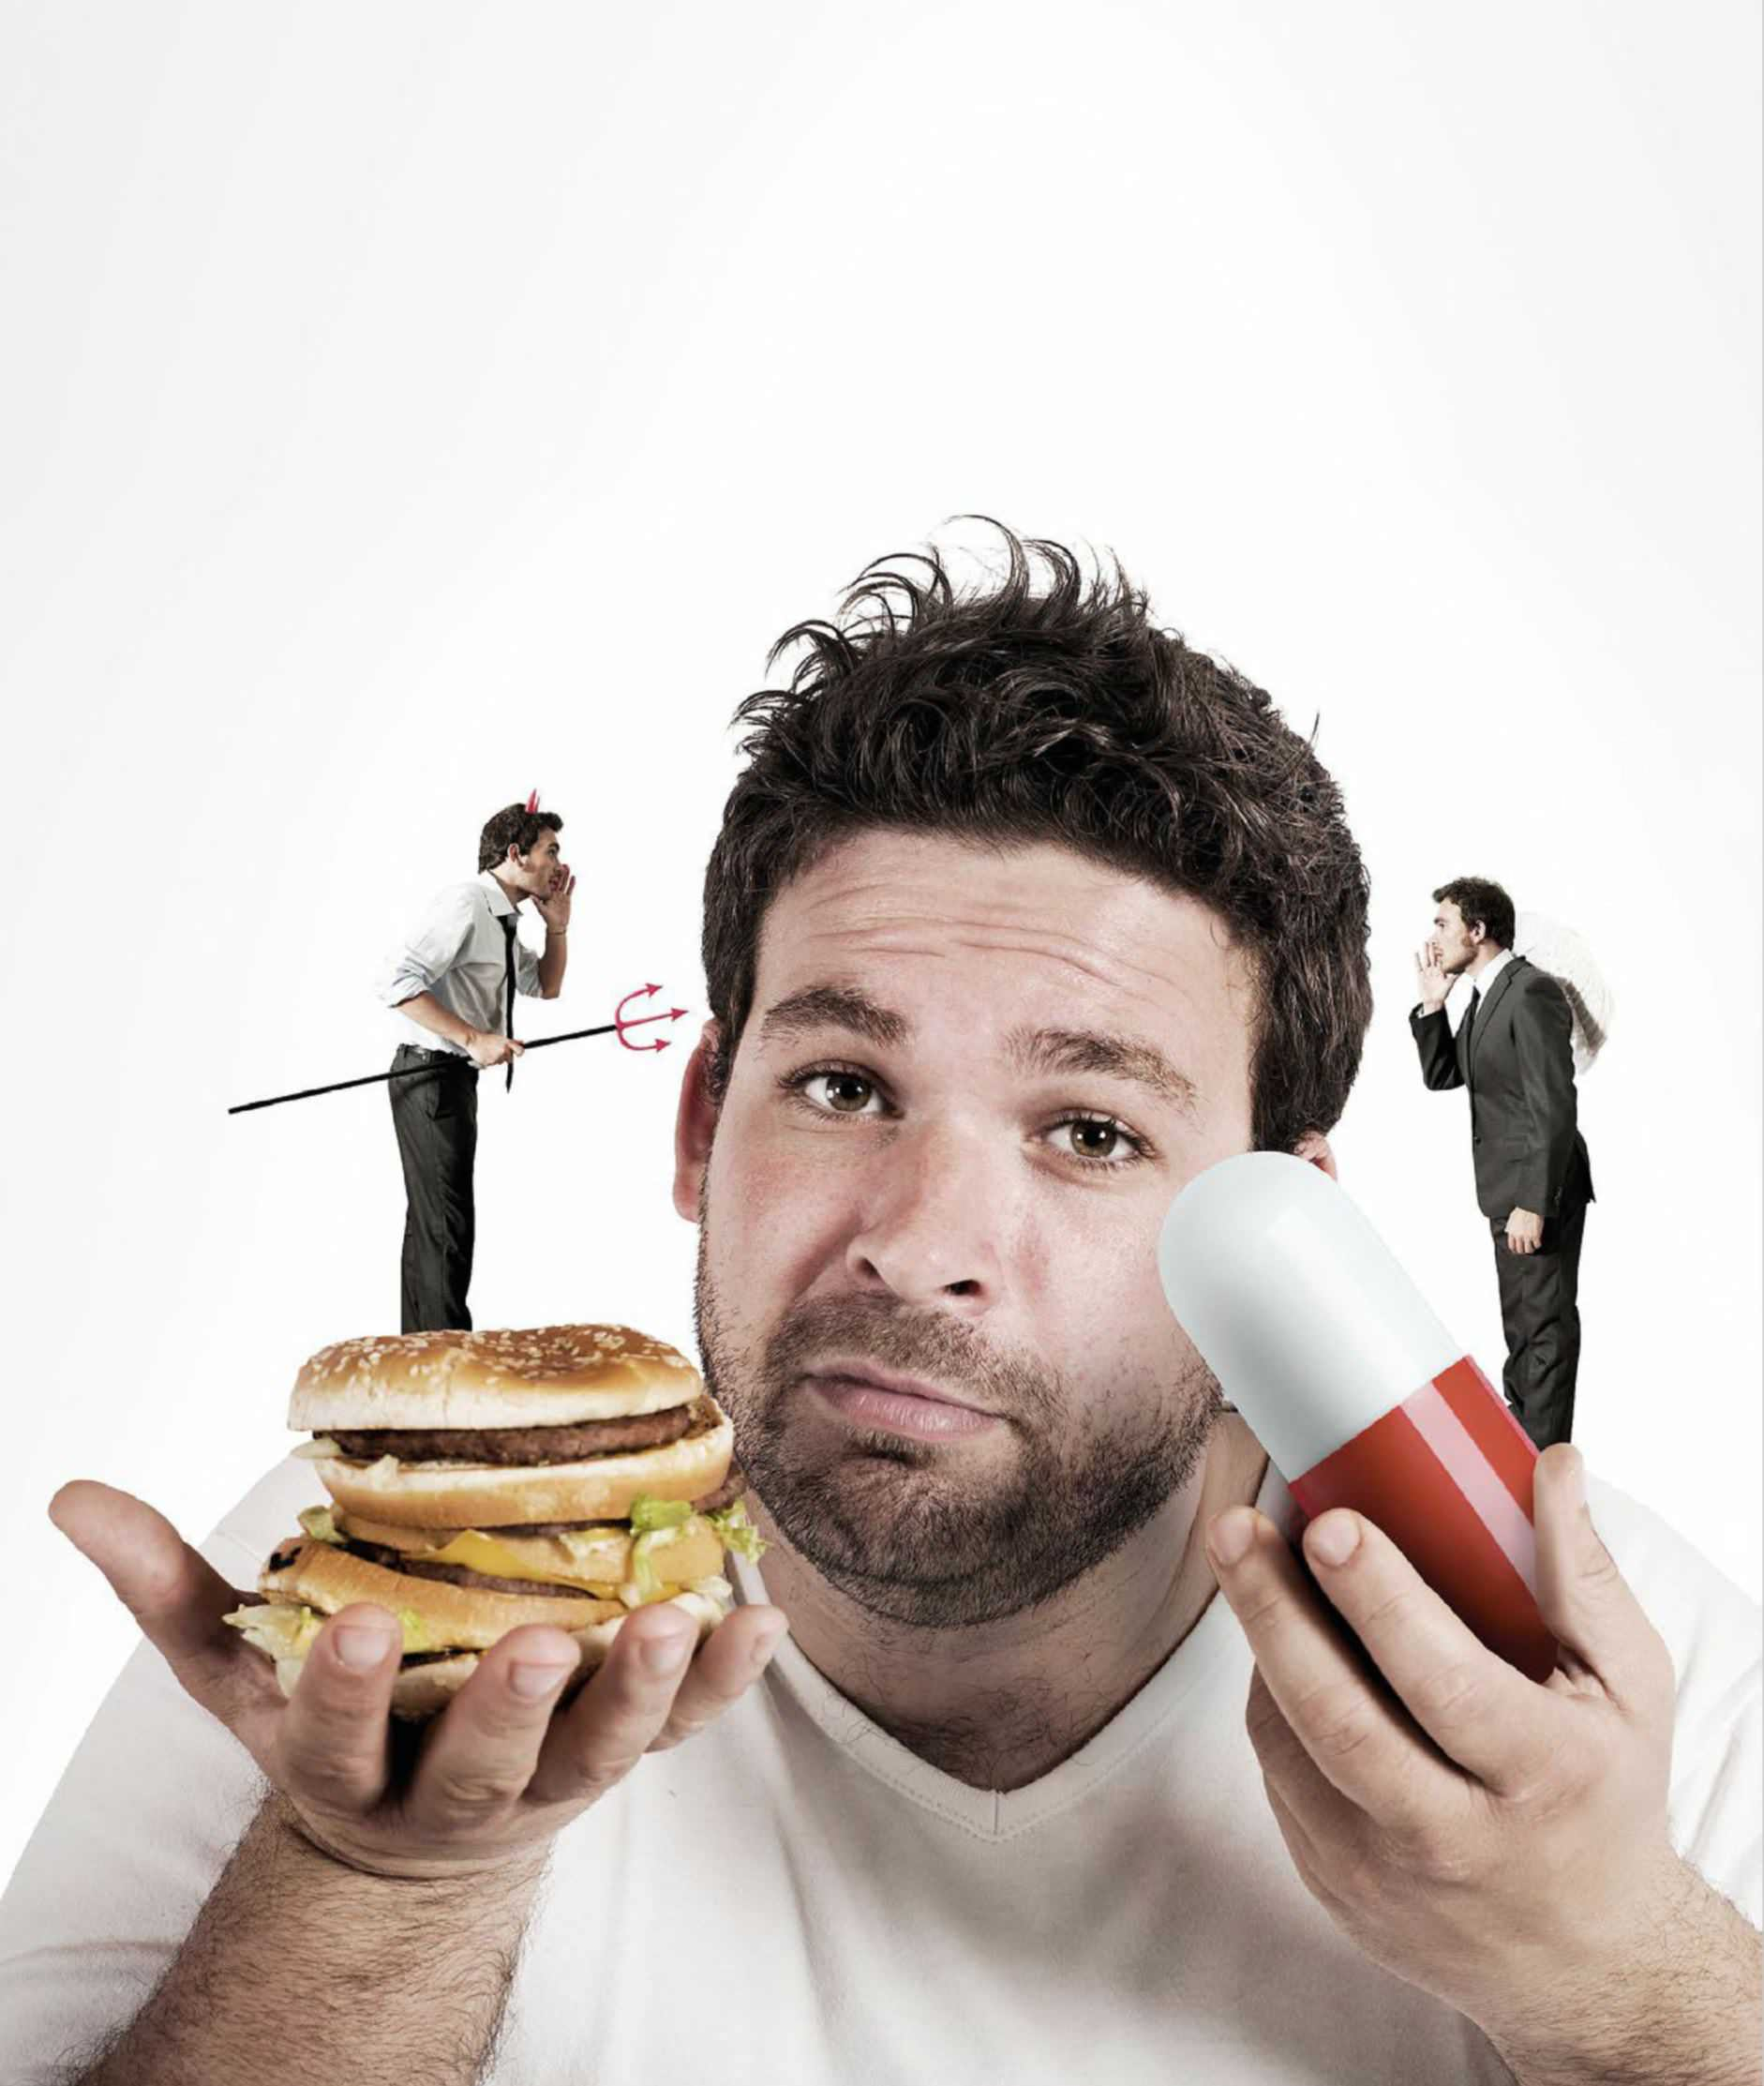 Men S Health Singapore: Why You Shouldn't Eat A Big Mac After Working Out